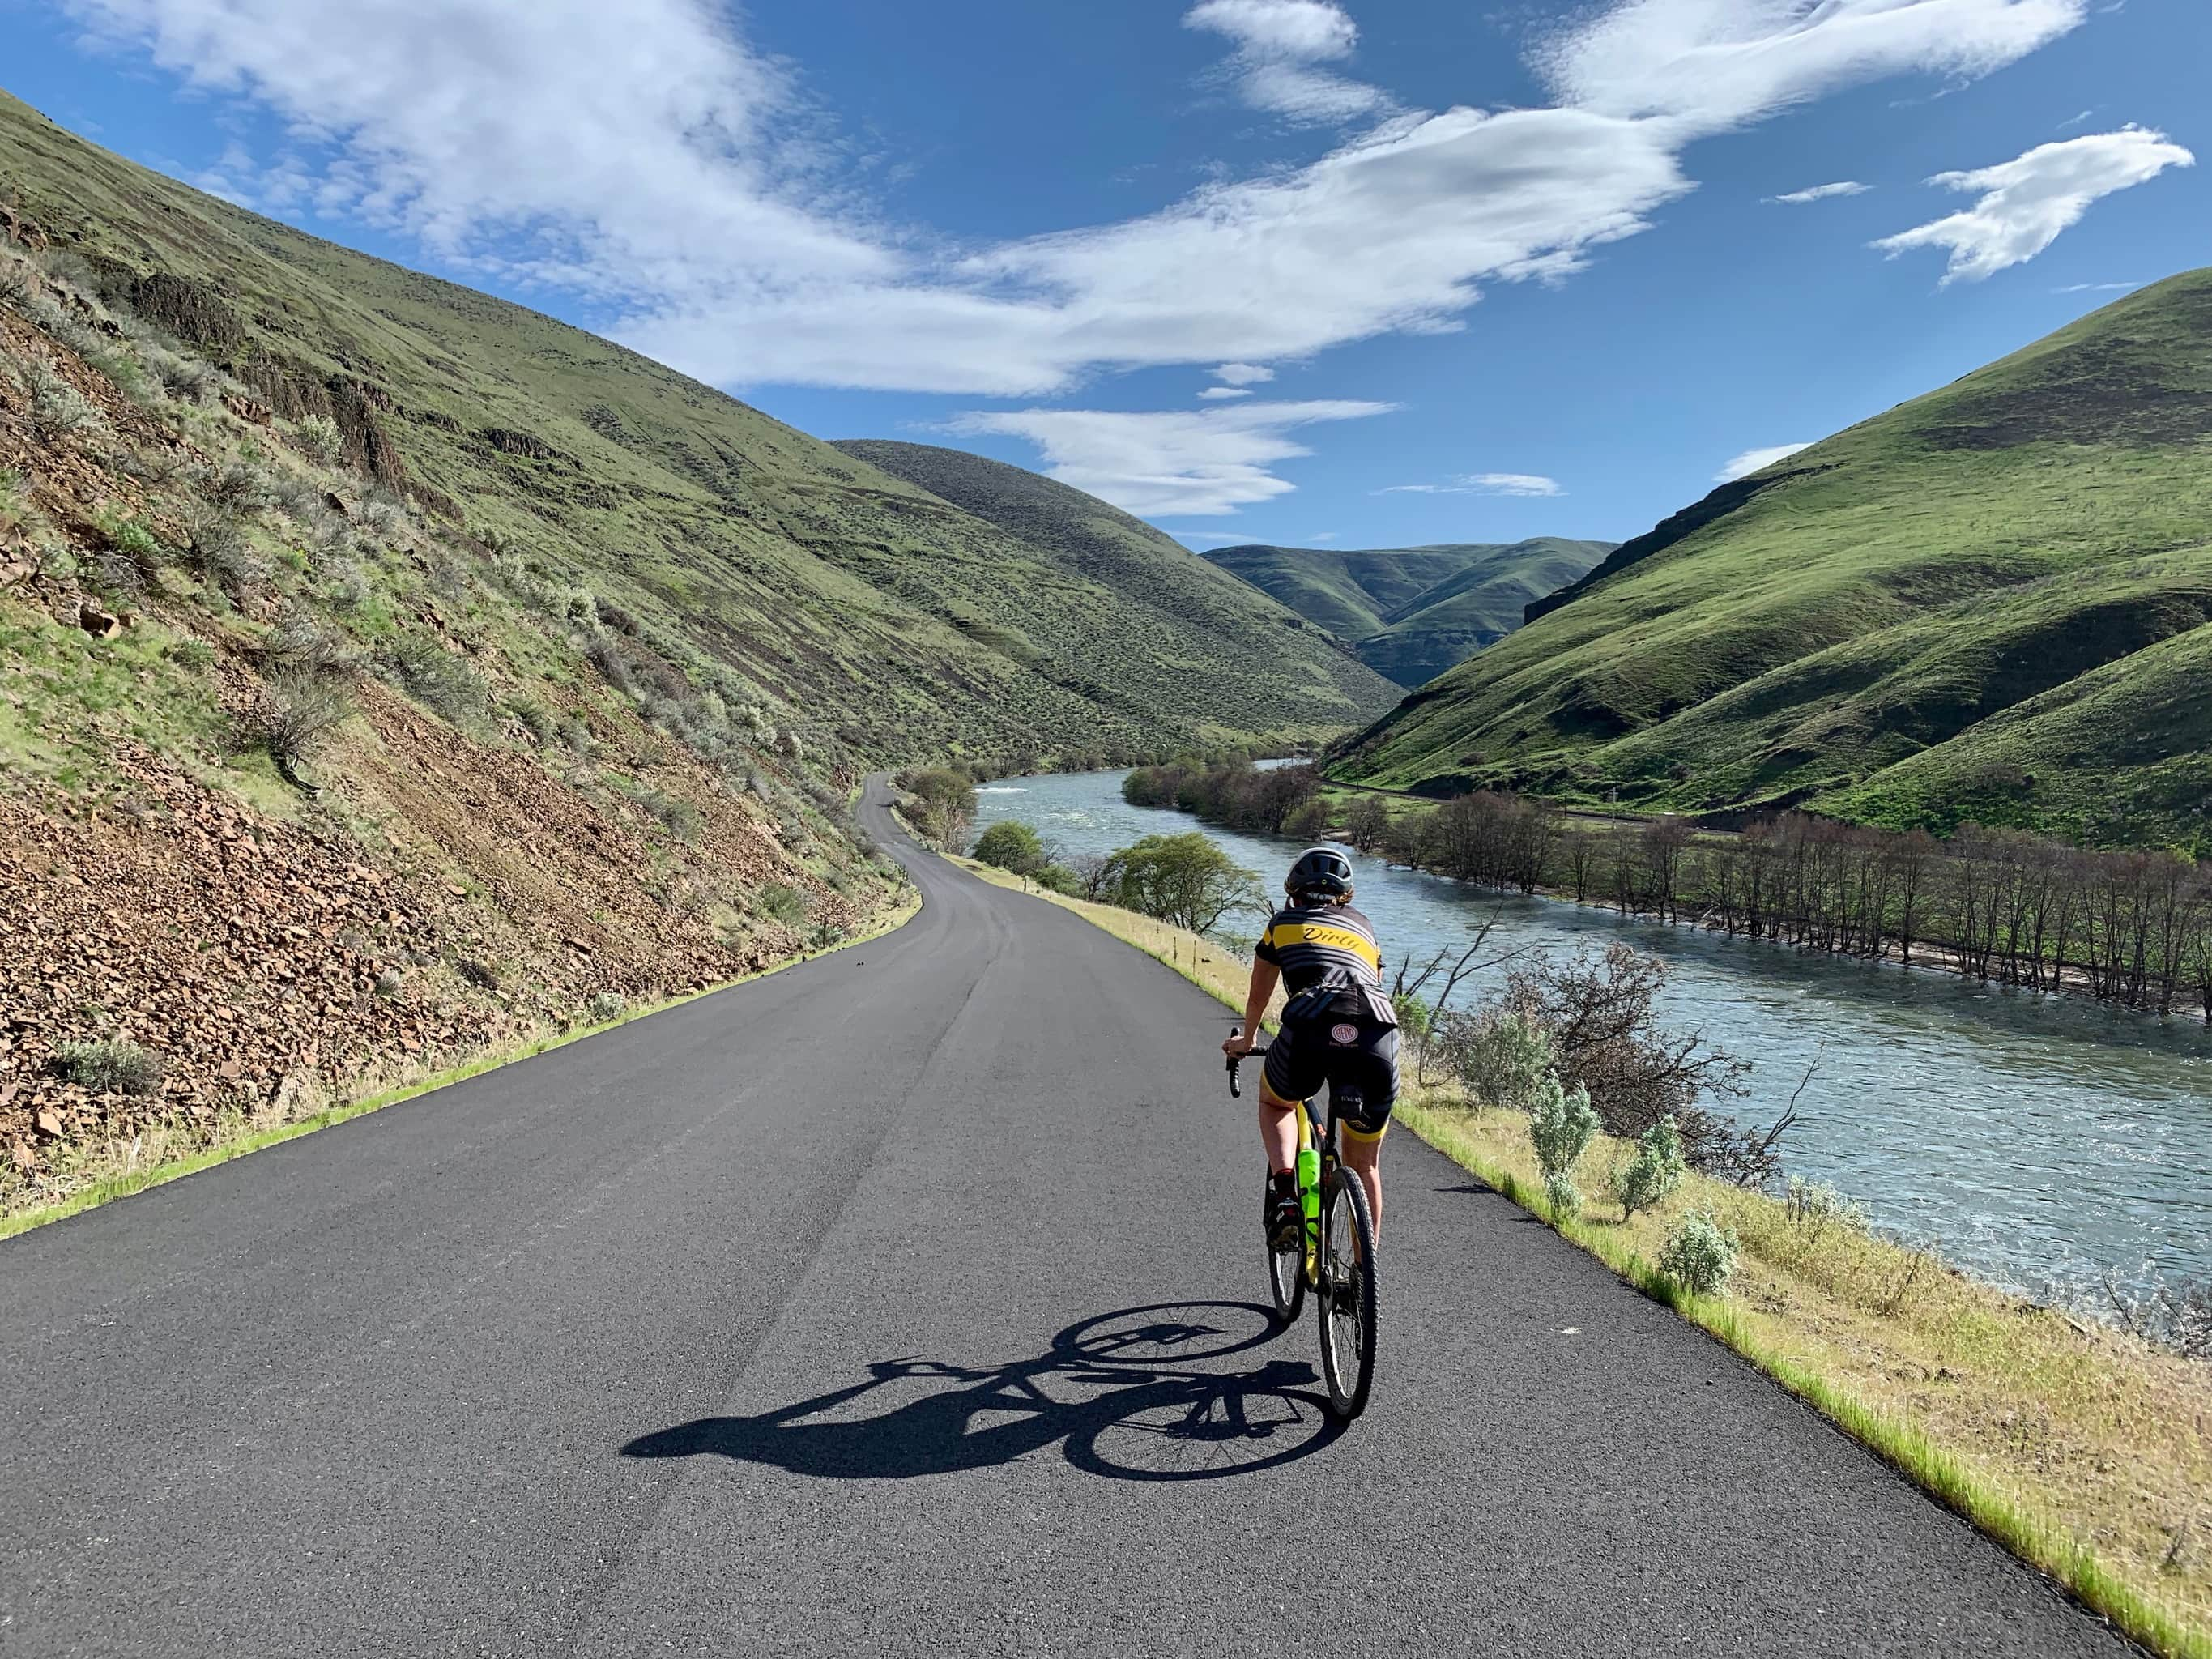 Bike rider on paved downhill, going south, along the Deschutes River near Maupin, Oregon.